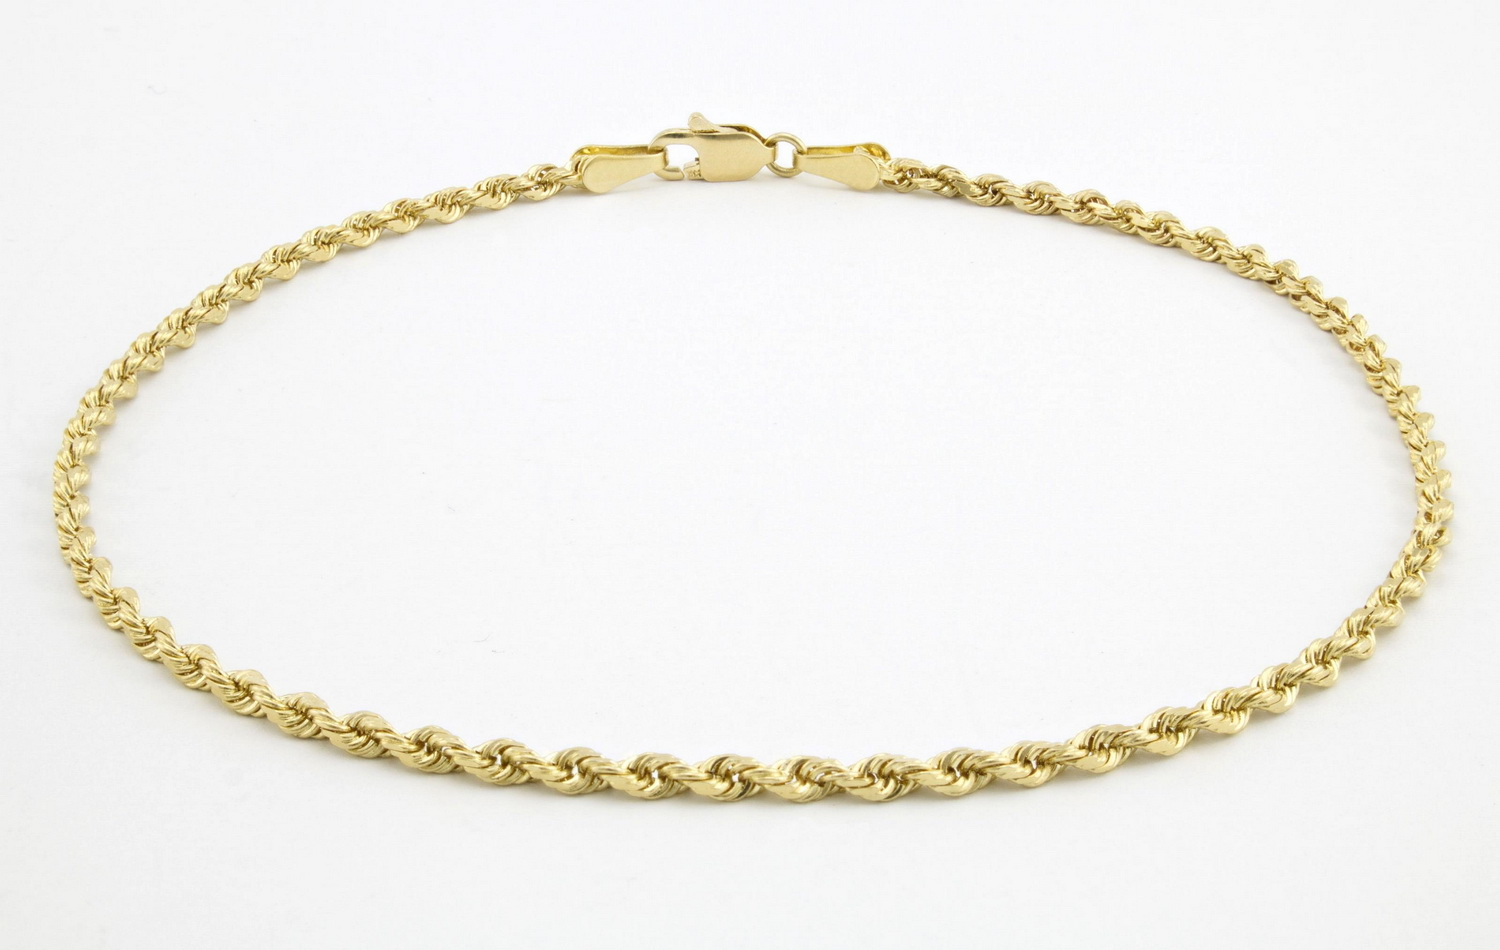 spring clasp solid itm worldwide bracelet ring shipping fast link rolo gold elephant anklet yellow